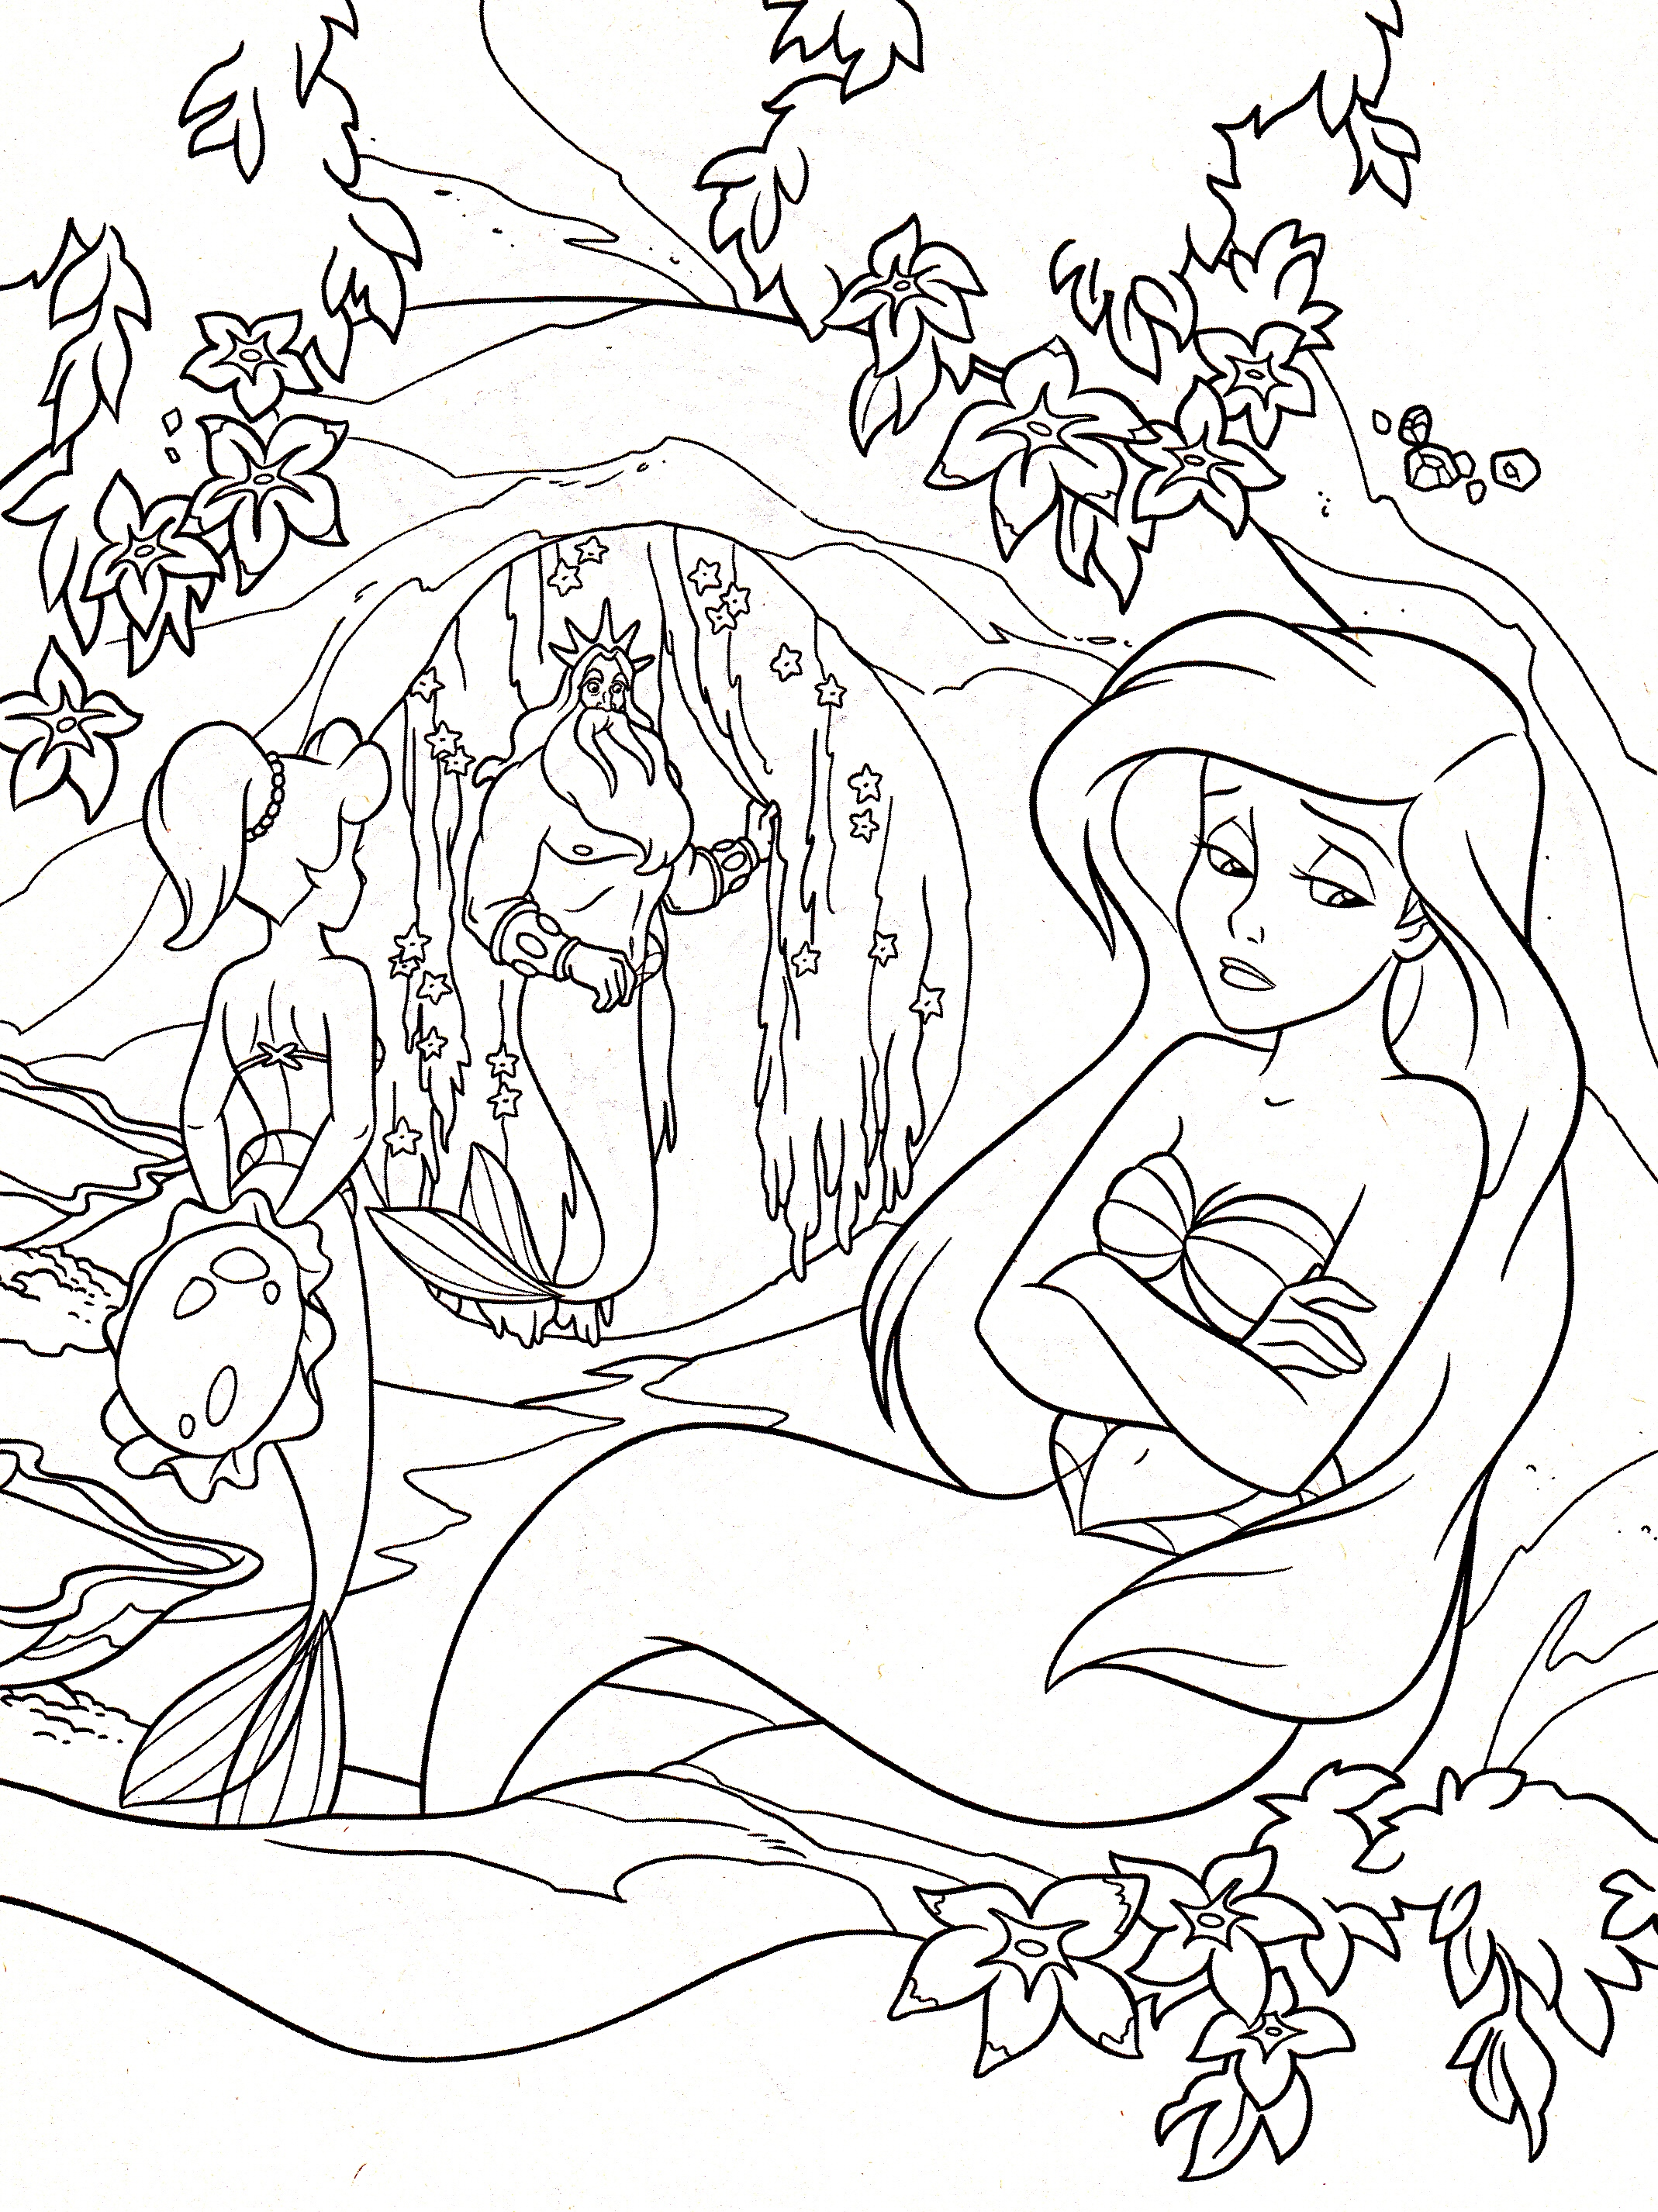 King Triton Coloring Page - Coloring Home | 2853x2138